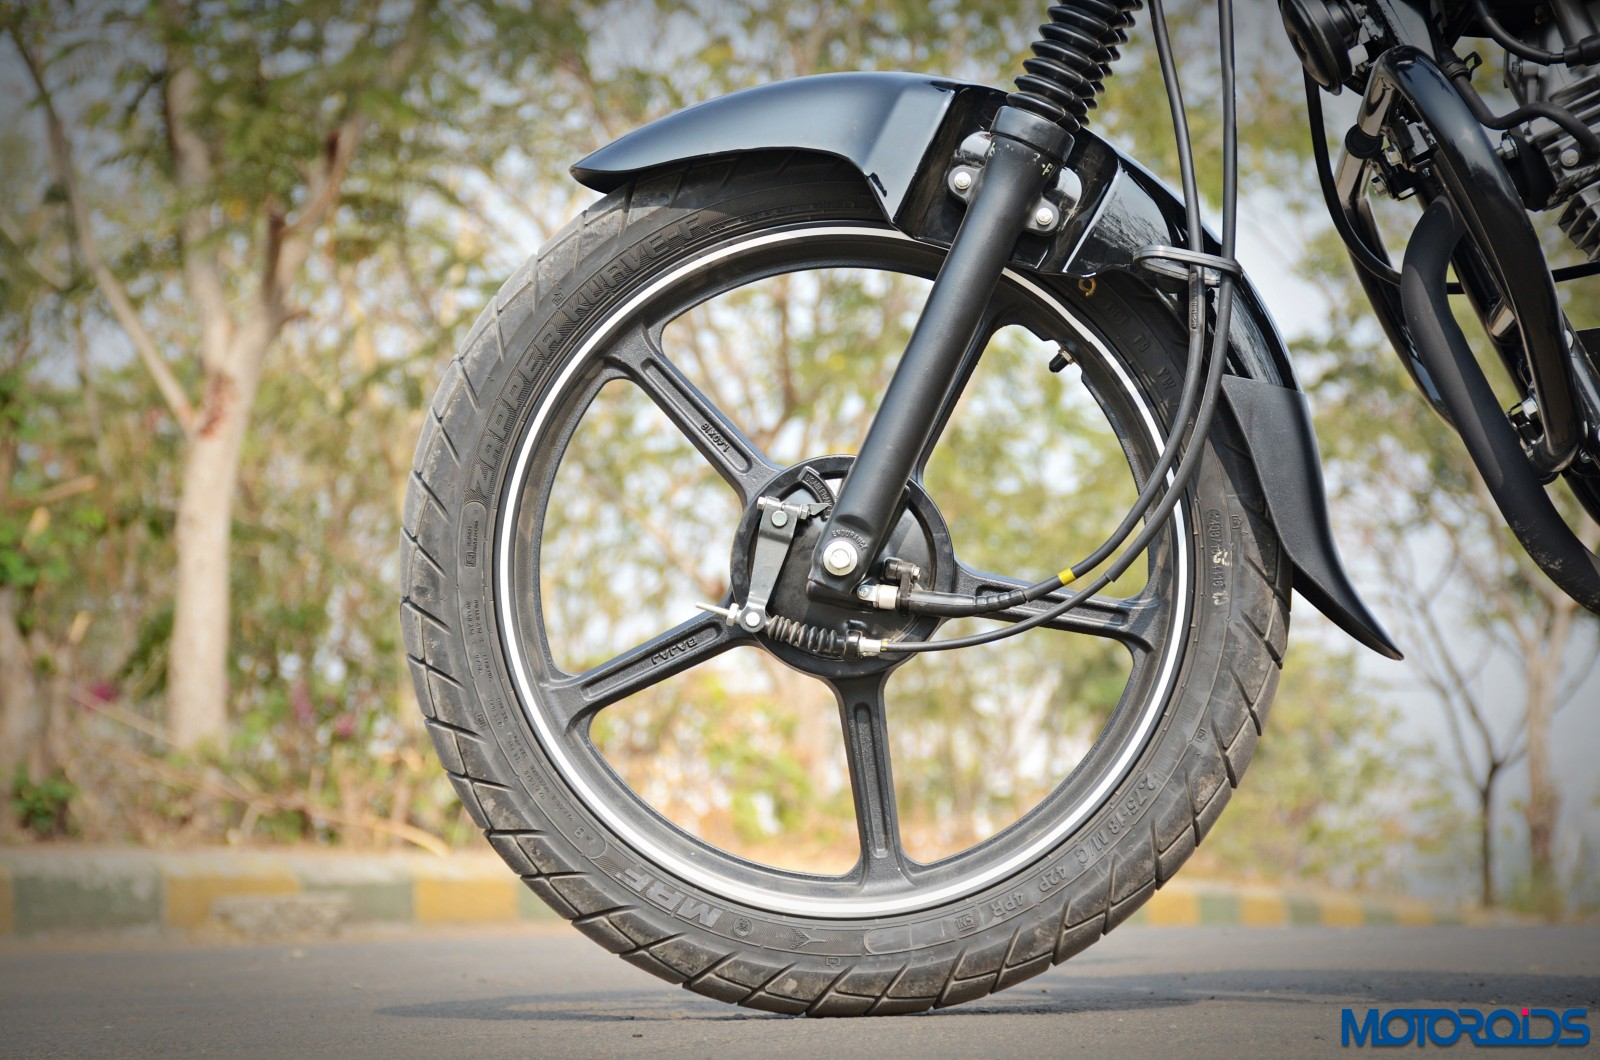 Bajaj-V12-Review-Details-3